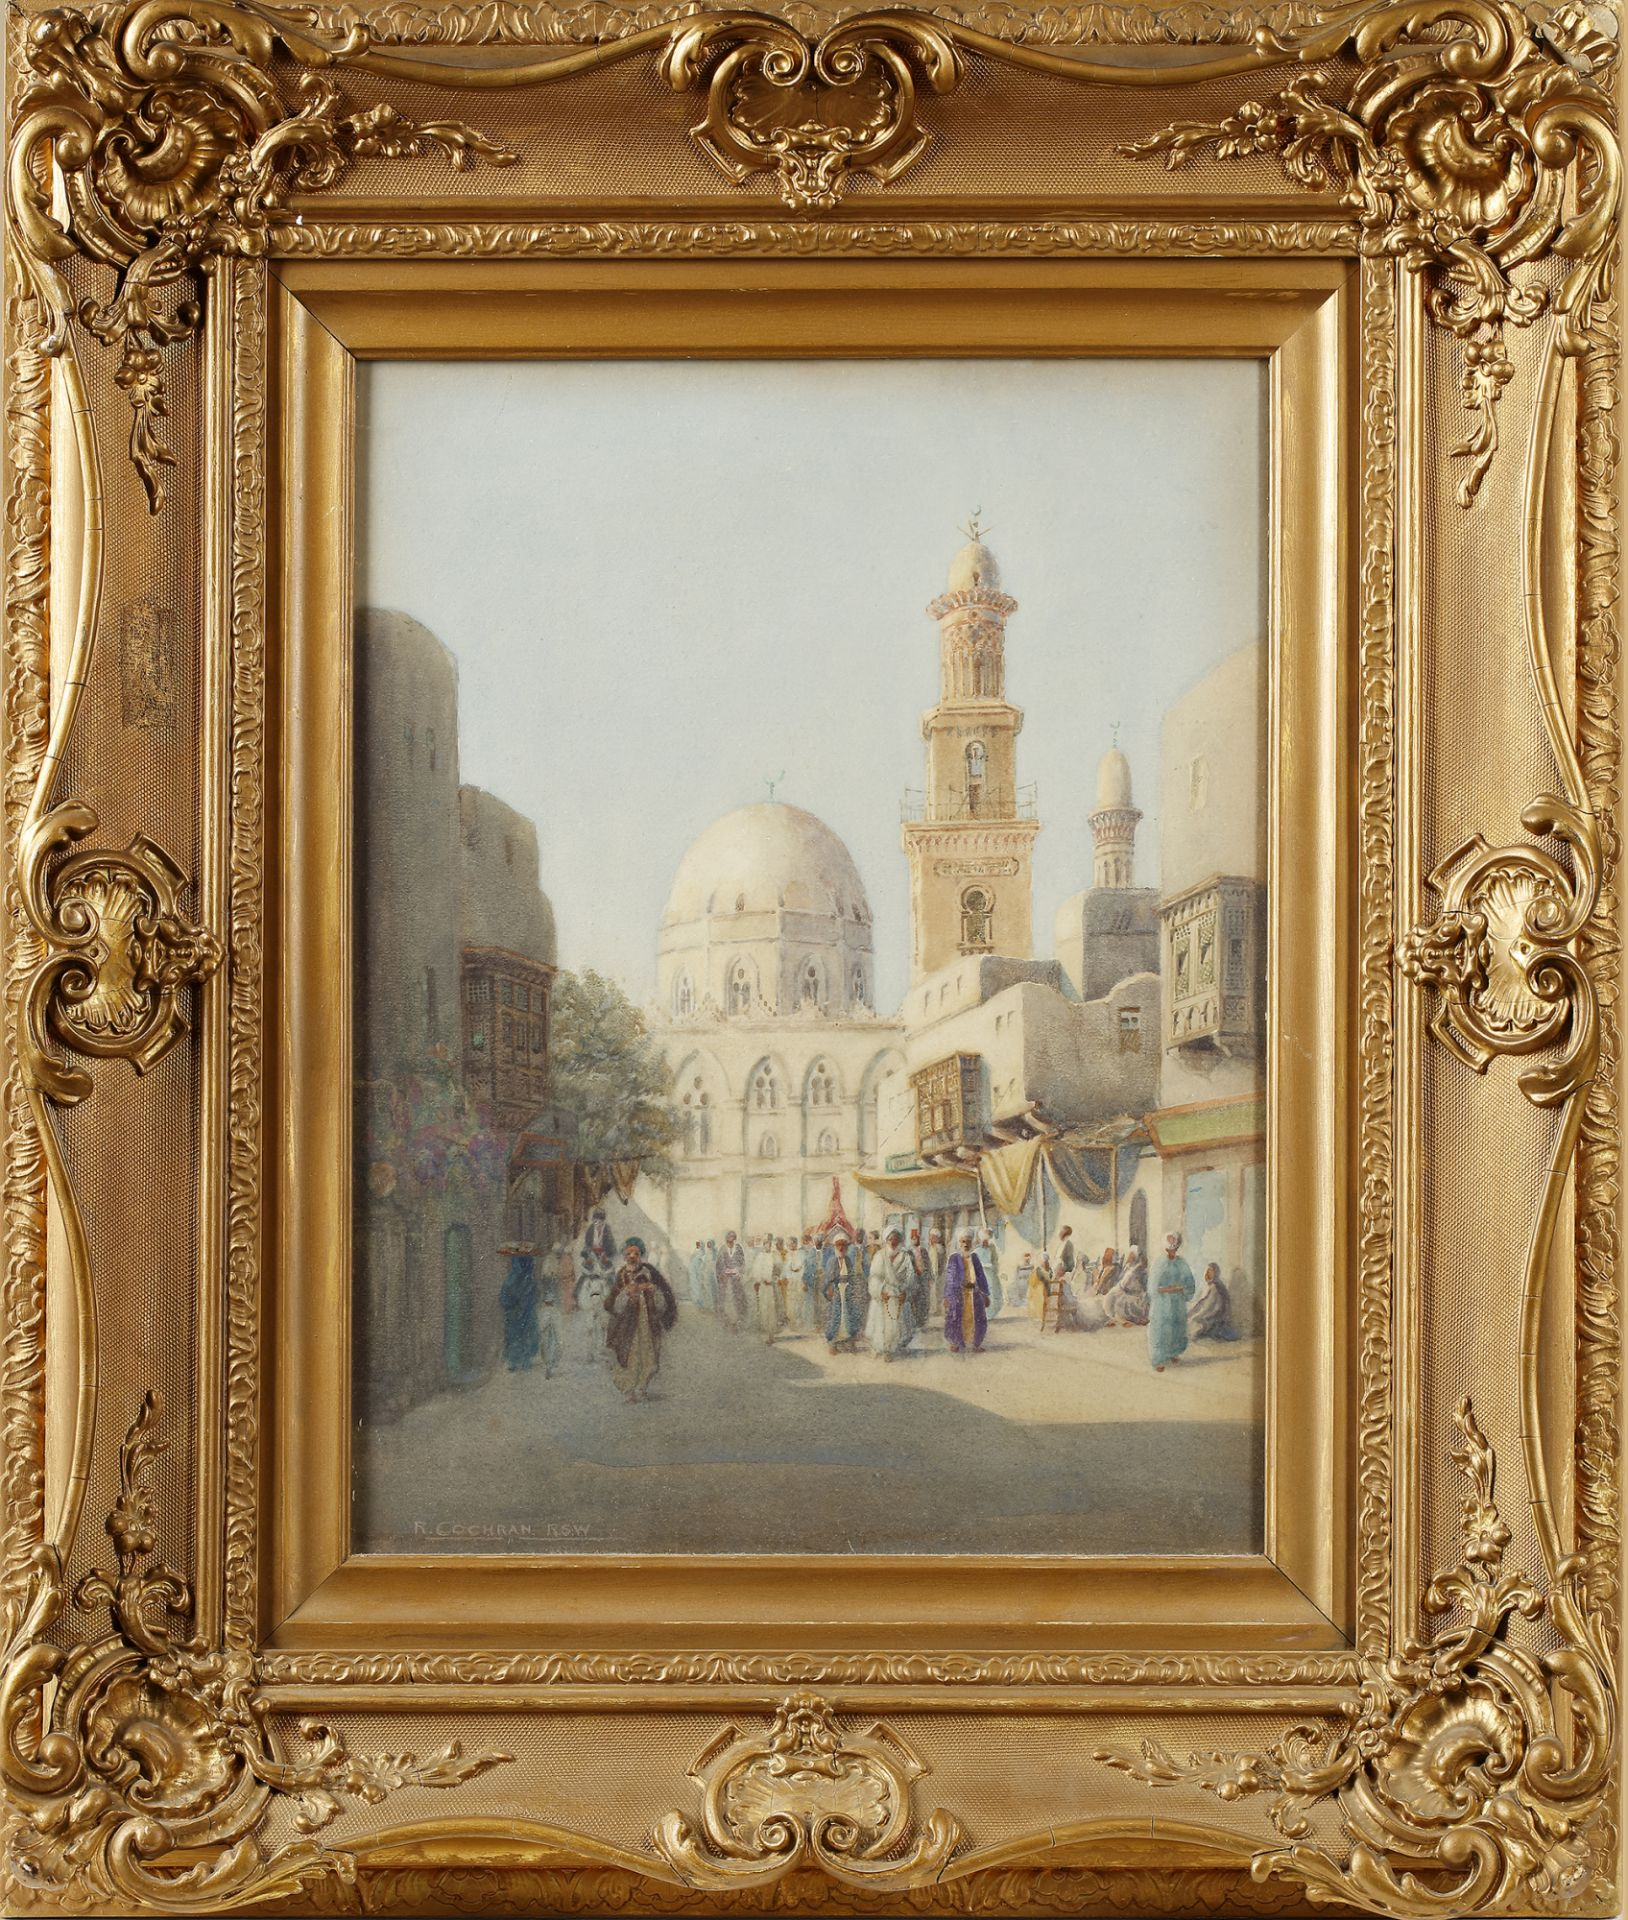 A PAINTING DEPICTING VARIOUS FIGURES NEAR THE MOSQUE IN CAIRO, 19TH-20TH CENTURY